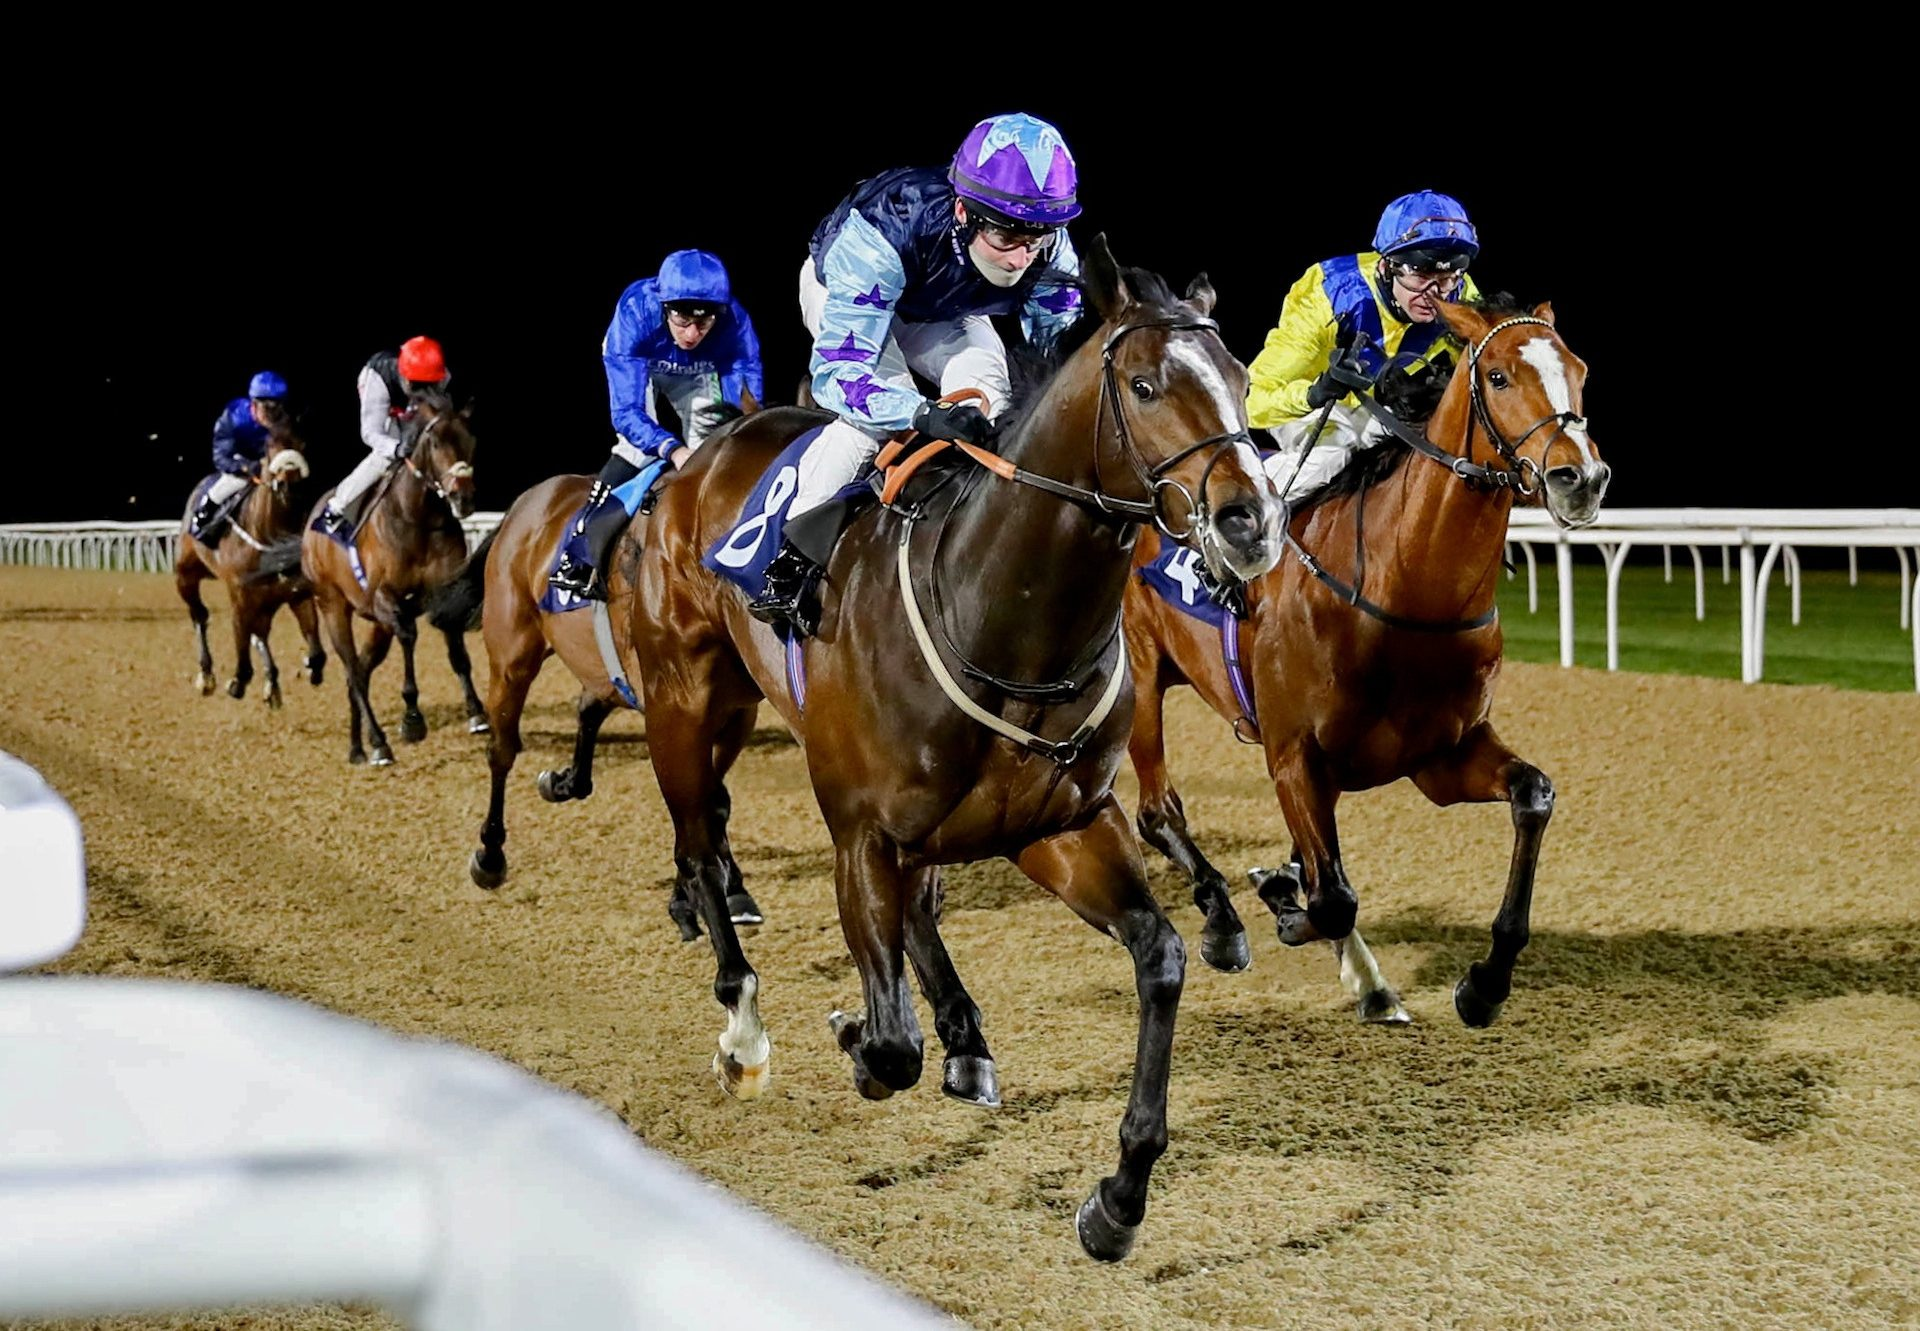 Glenfiddich (Fastnet Rock) finishing second in the Gr.1 Champagne Stakes to King's Legacy